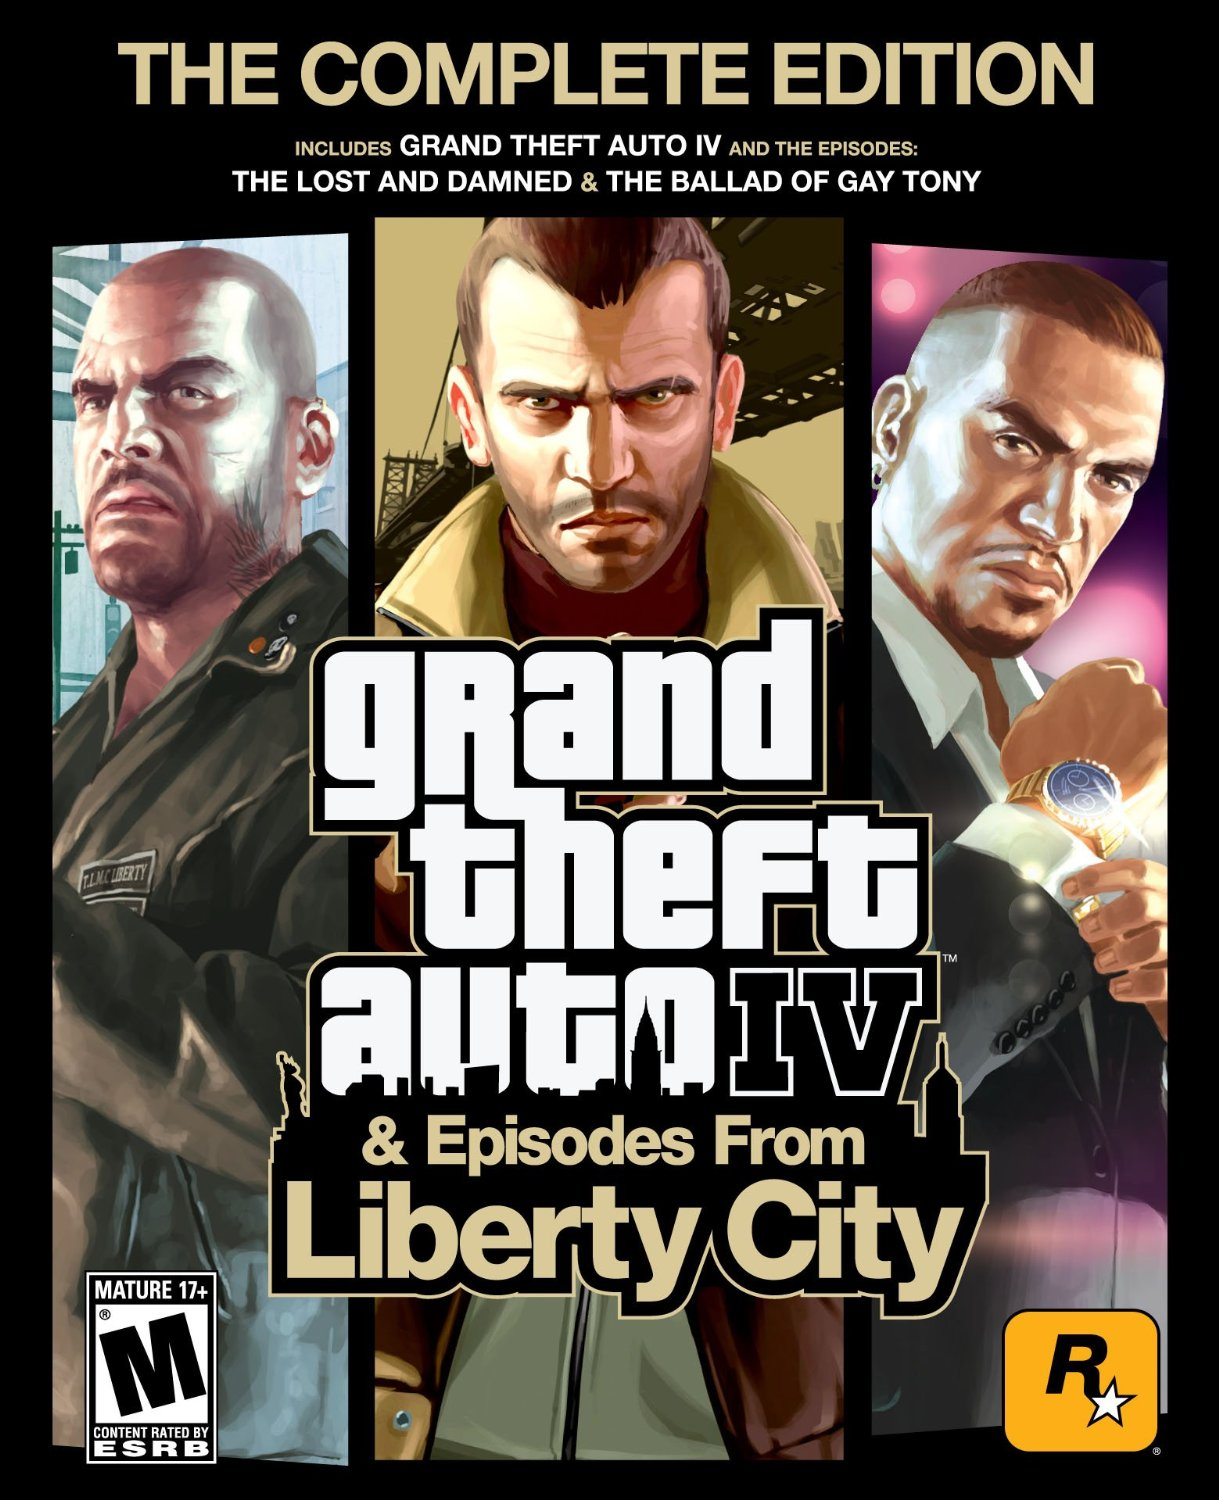 GRAND THEFT AUTO 4 IV :COMPLETE (STEAM/REGION FREE)